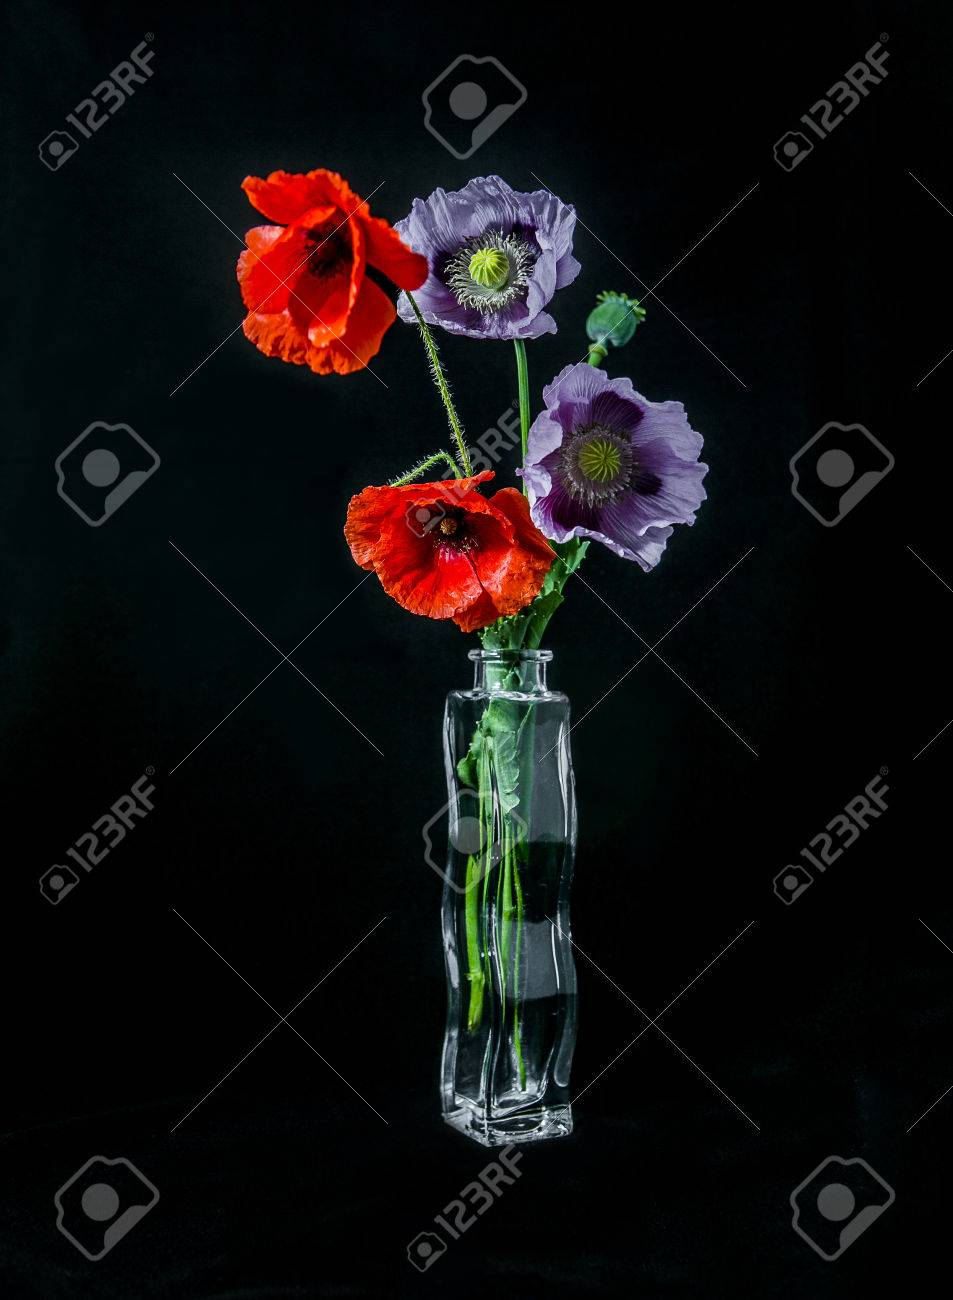 Pink and red poppy flowers in vase on black background - 56196698